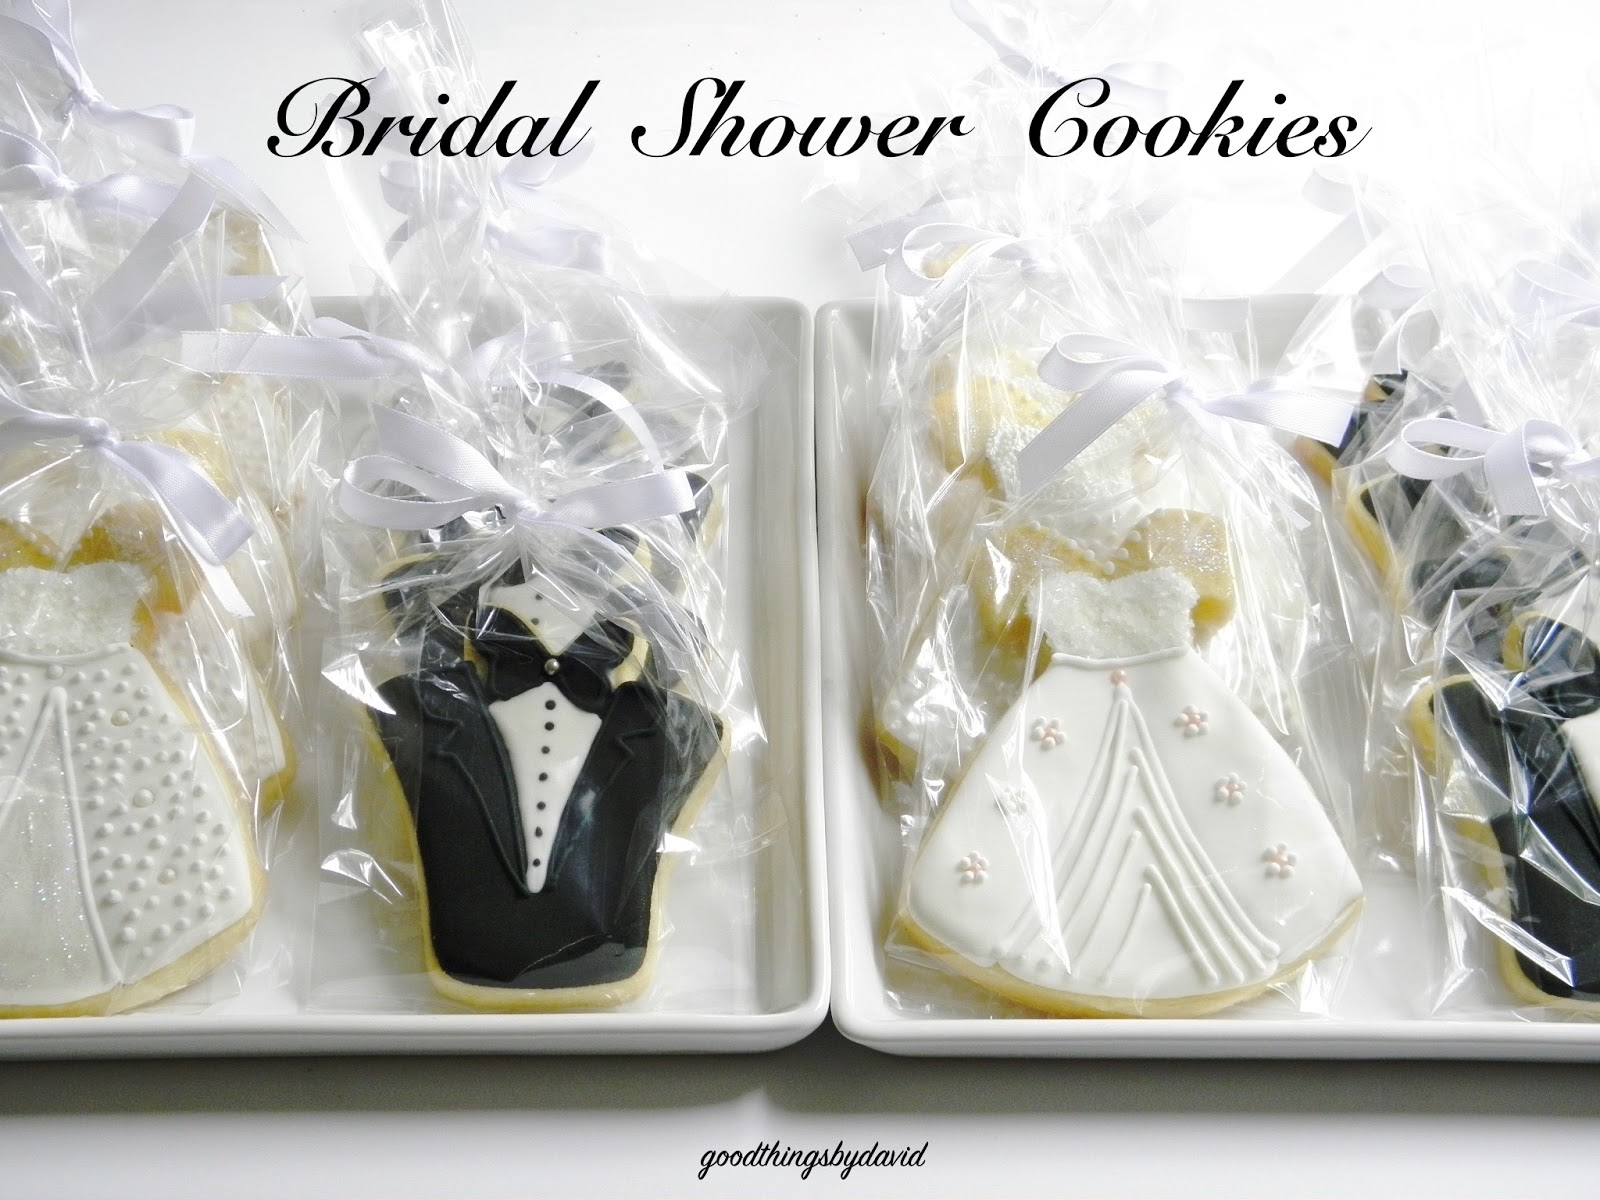 Good Things by David: Bridal Shower Cookies